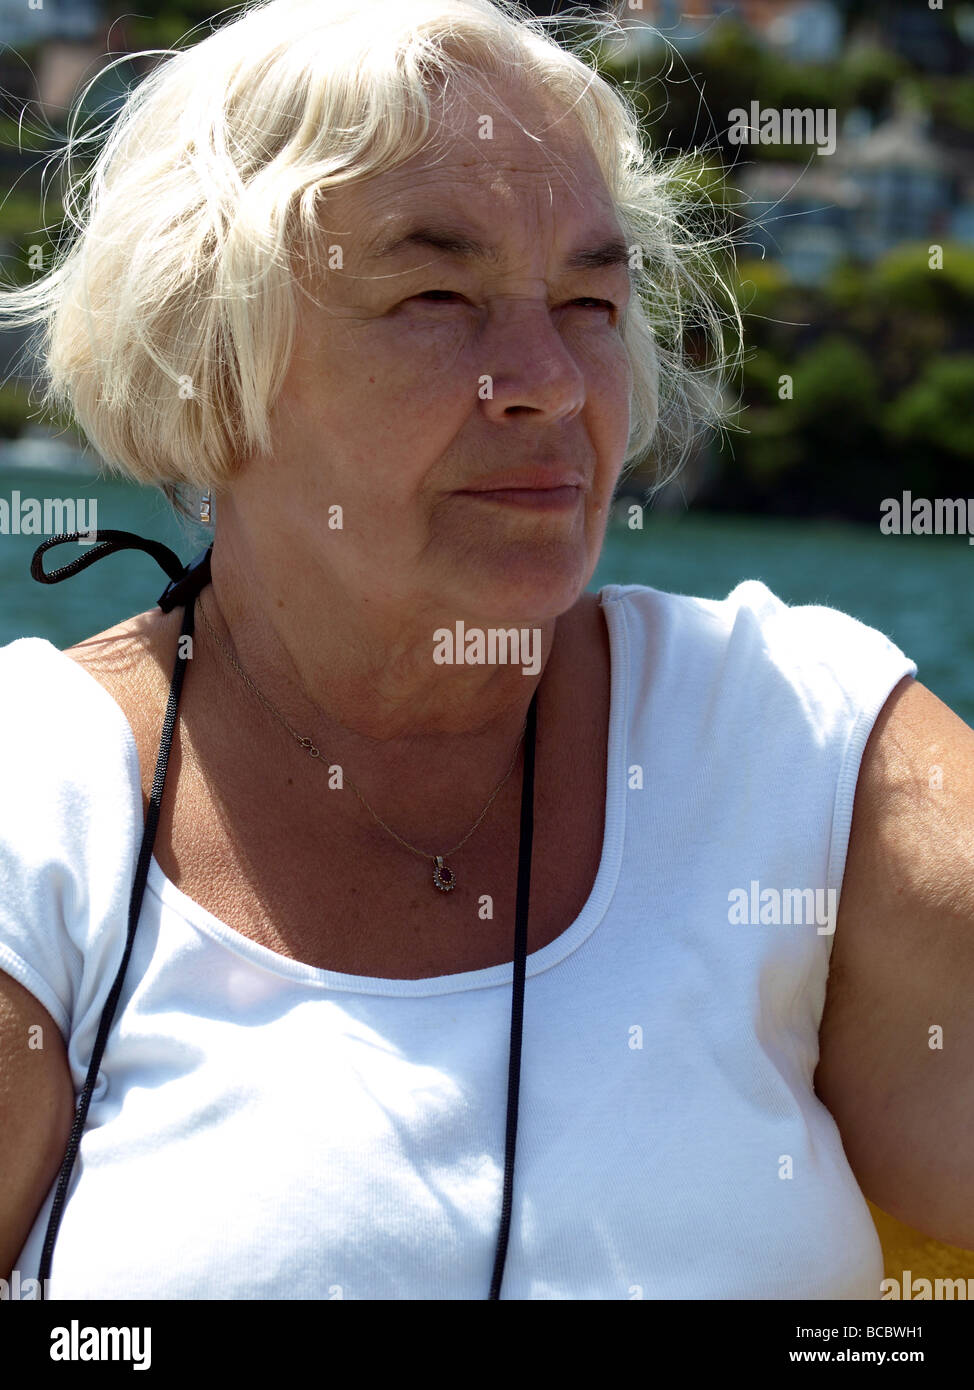 Senior lady in contemplation. - Stock Image